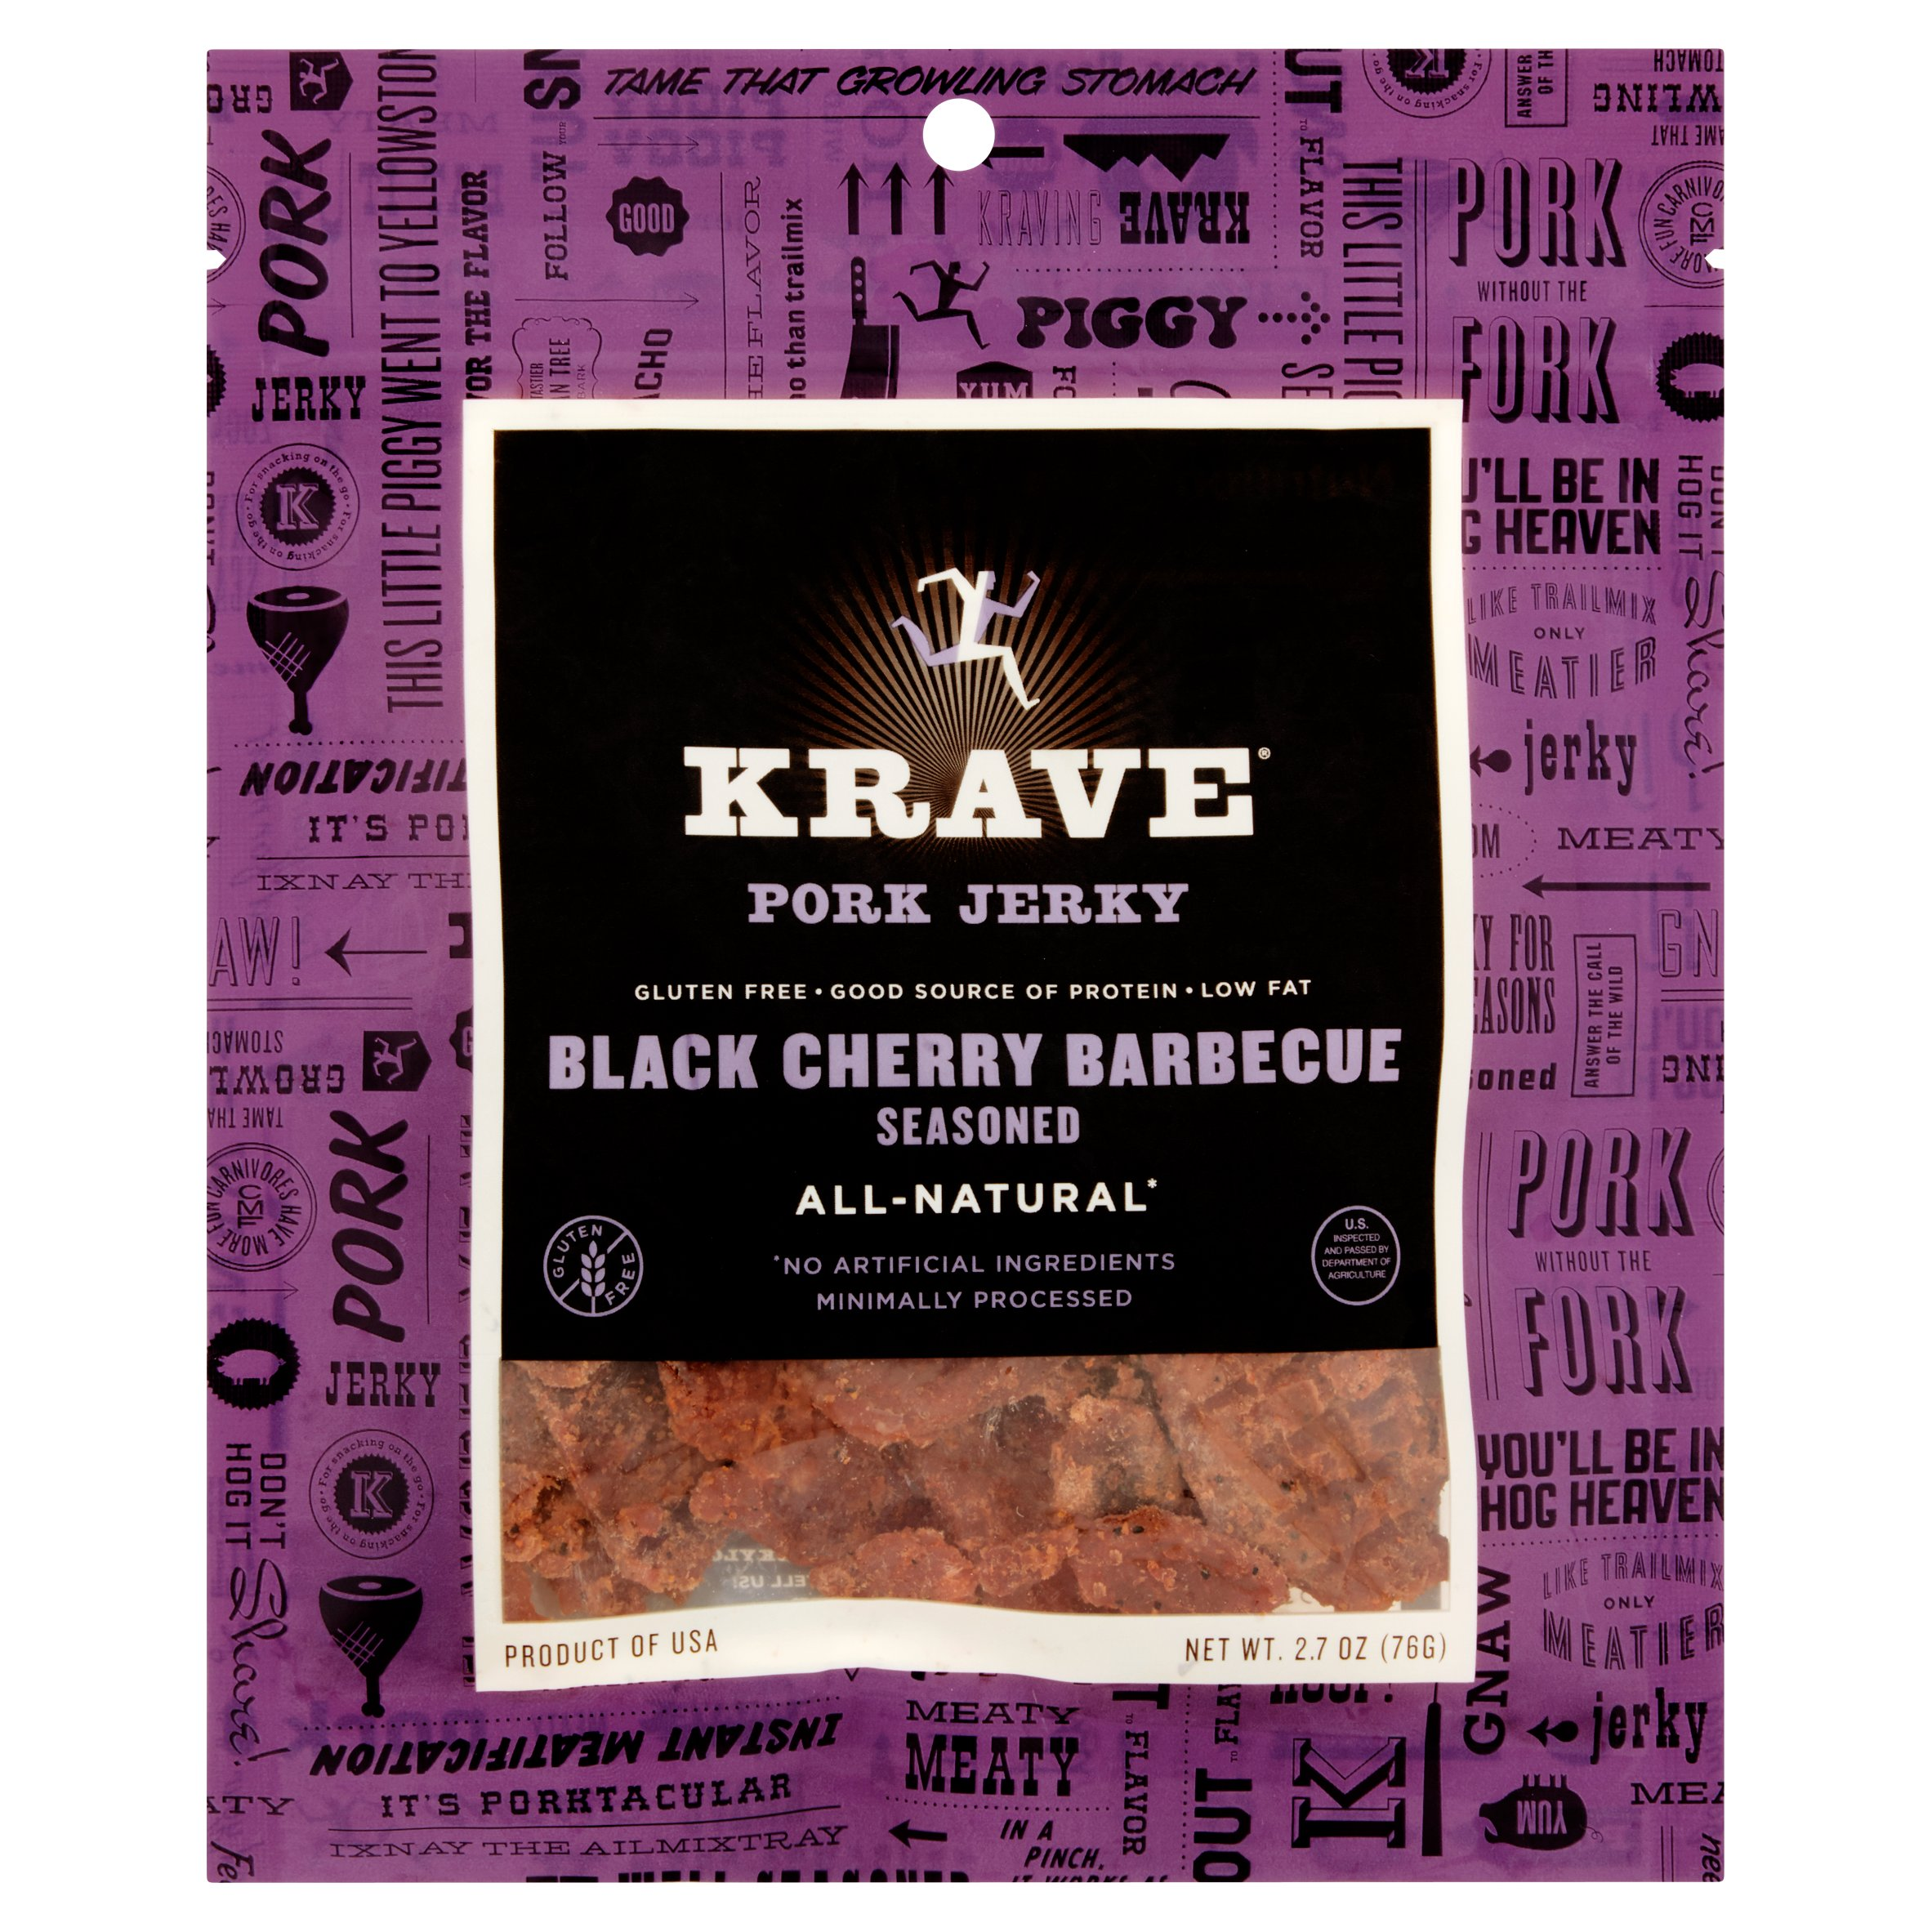 Krave Black Cherry Barbecue Seasoned Pork Jerky, 2.7 oz by Krave Pure Foods, Inc.